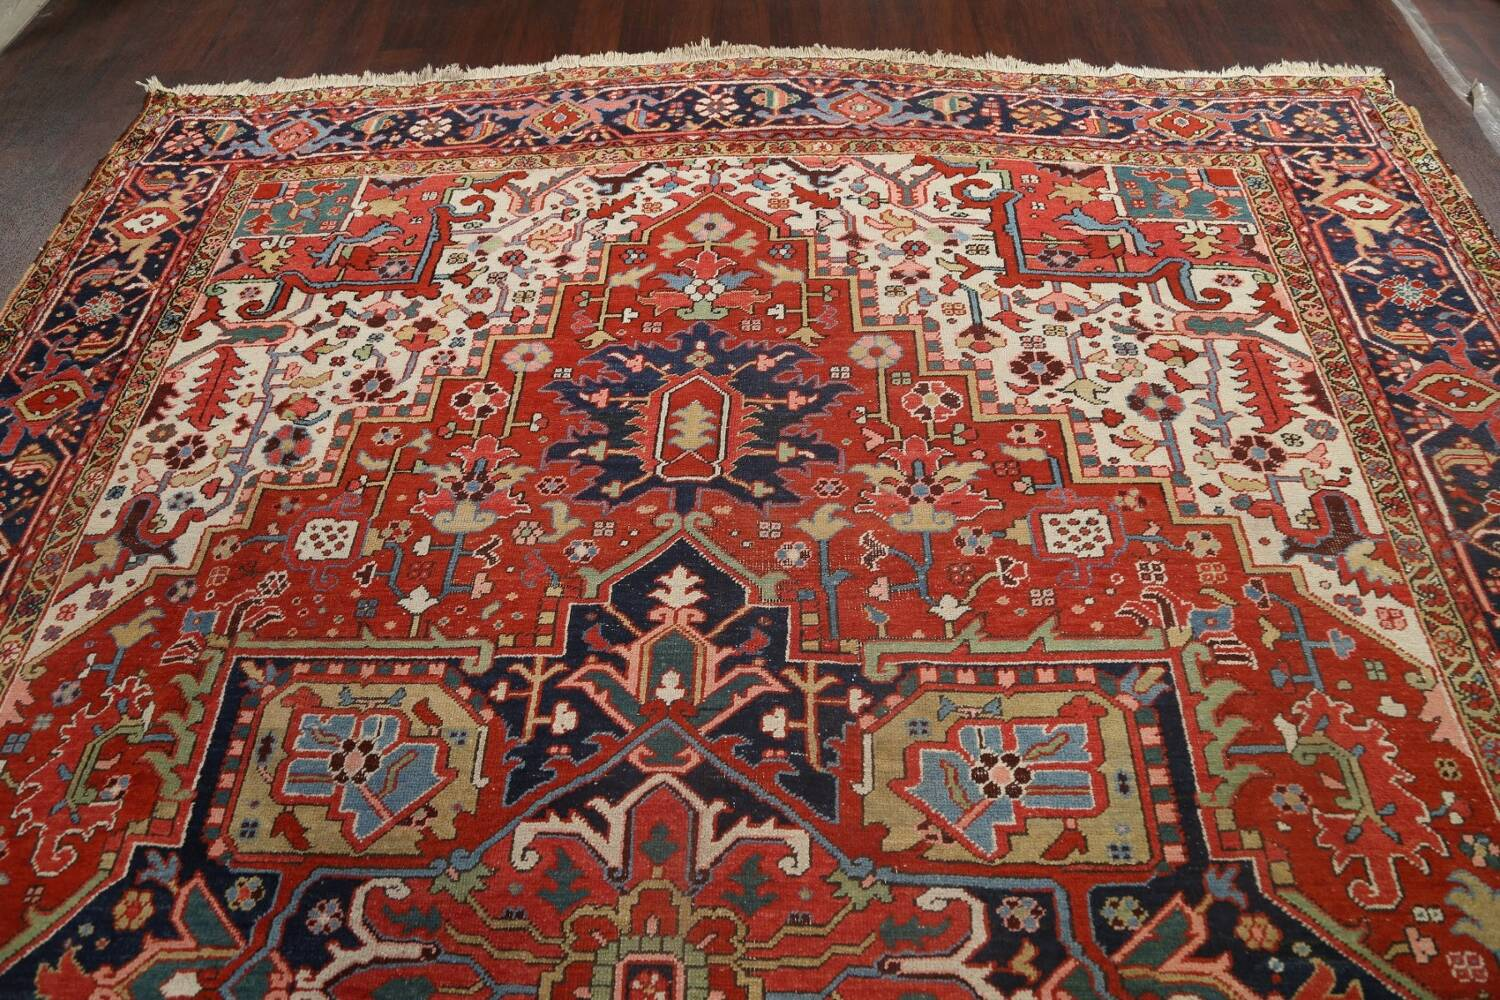 Pre-1900 Antique Vegetable Dye Heriz Serapi Persian Area Rug 10x13 image 15